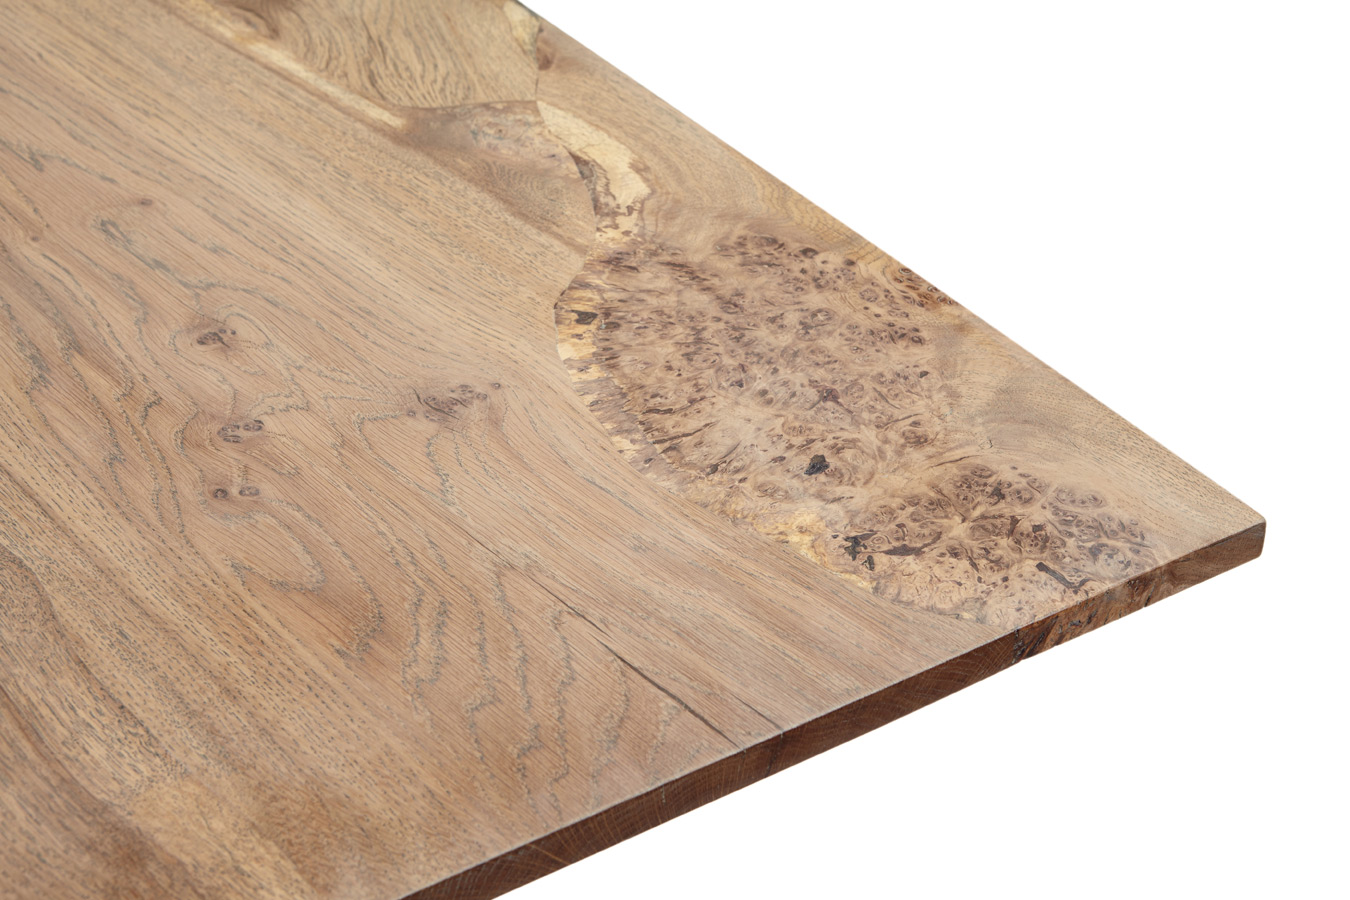 29_Burr-oak-table-and-chairs_3.jpg